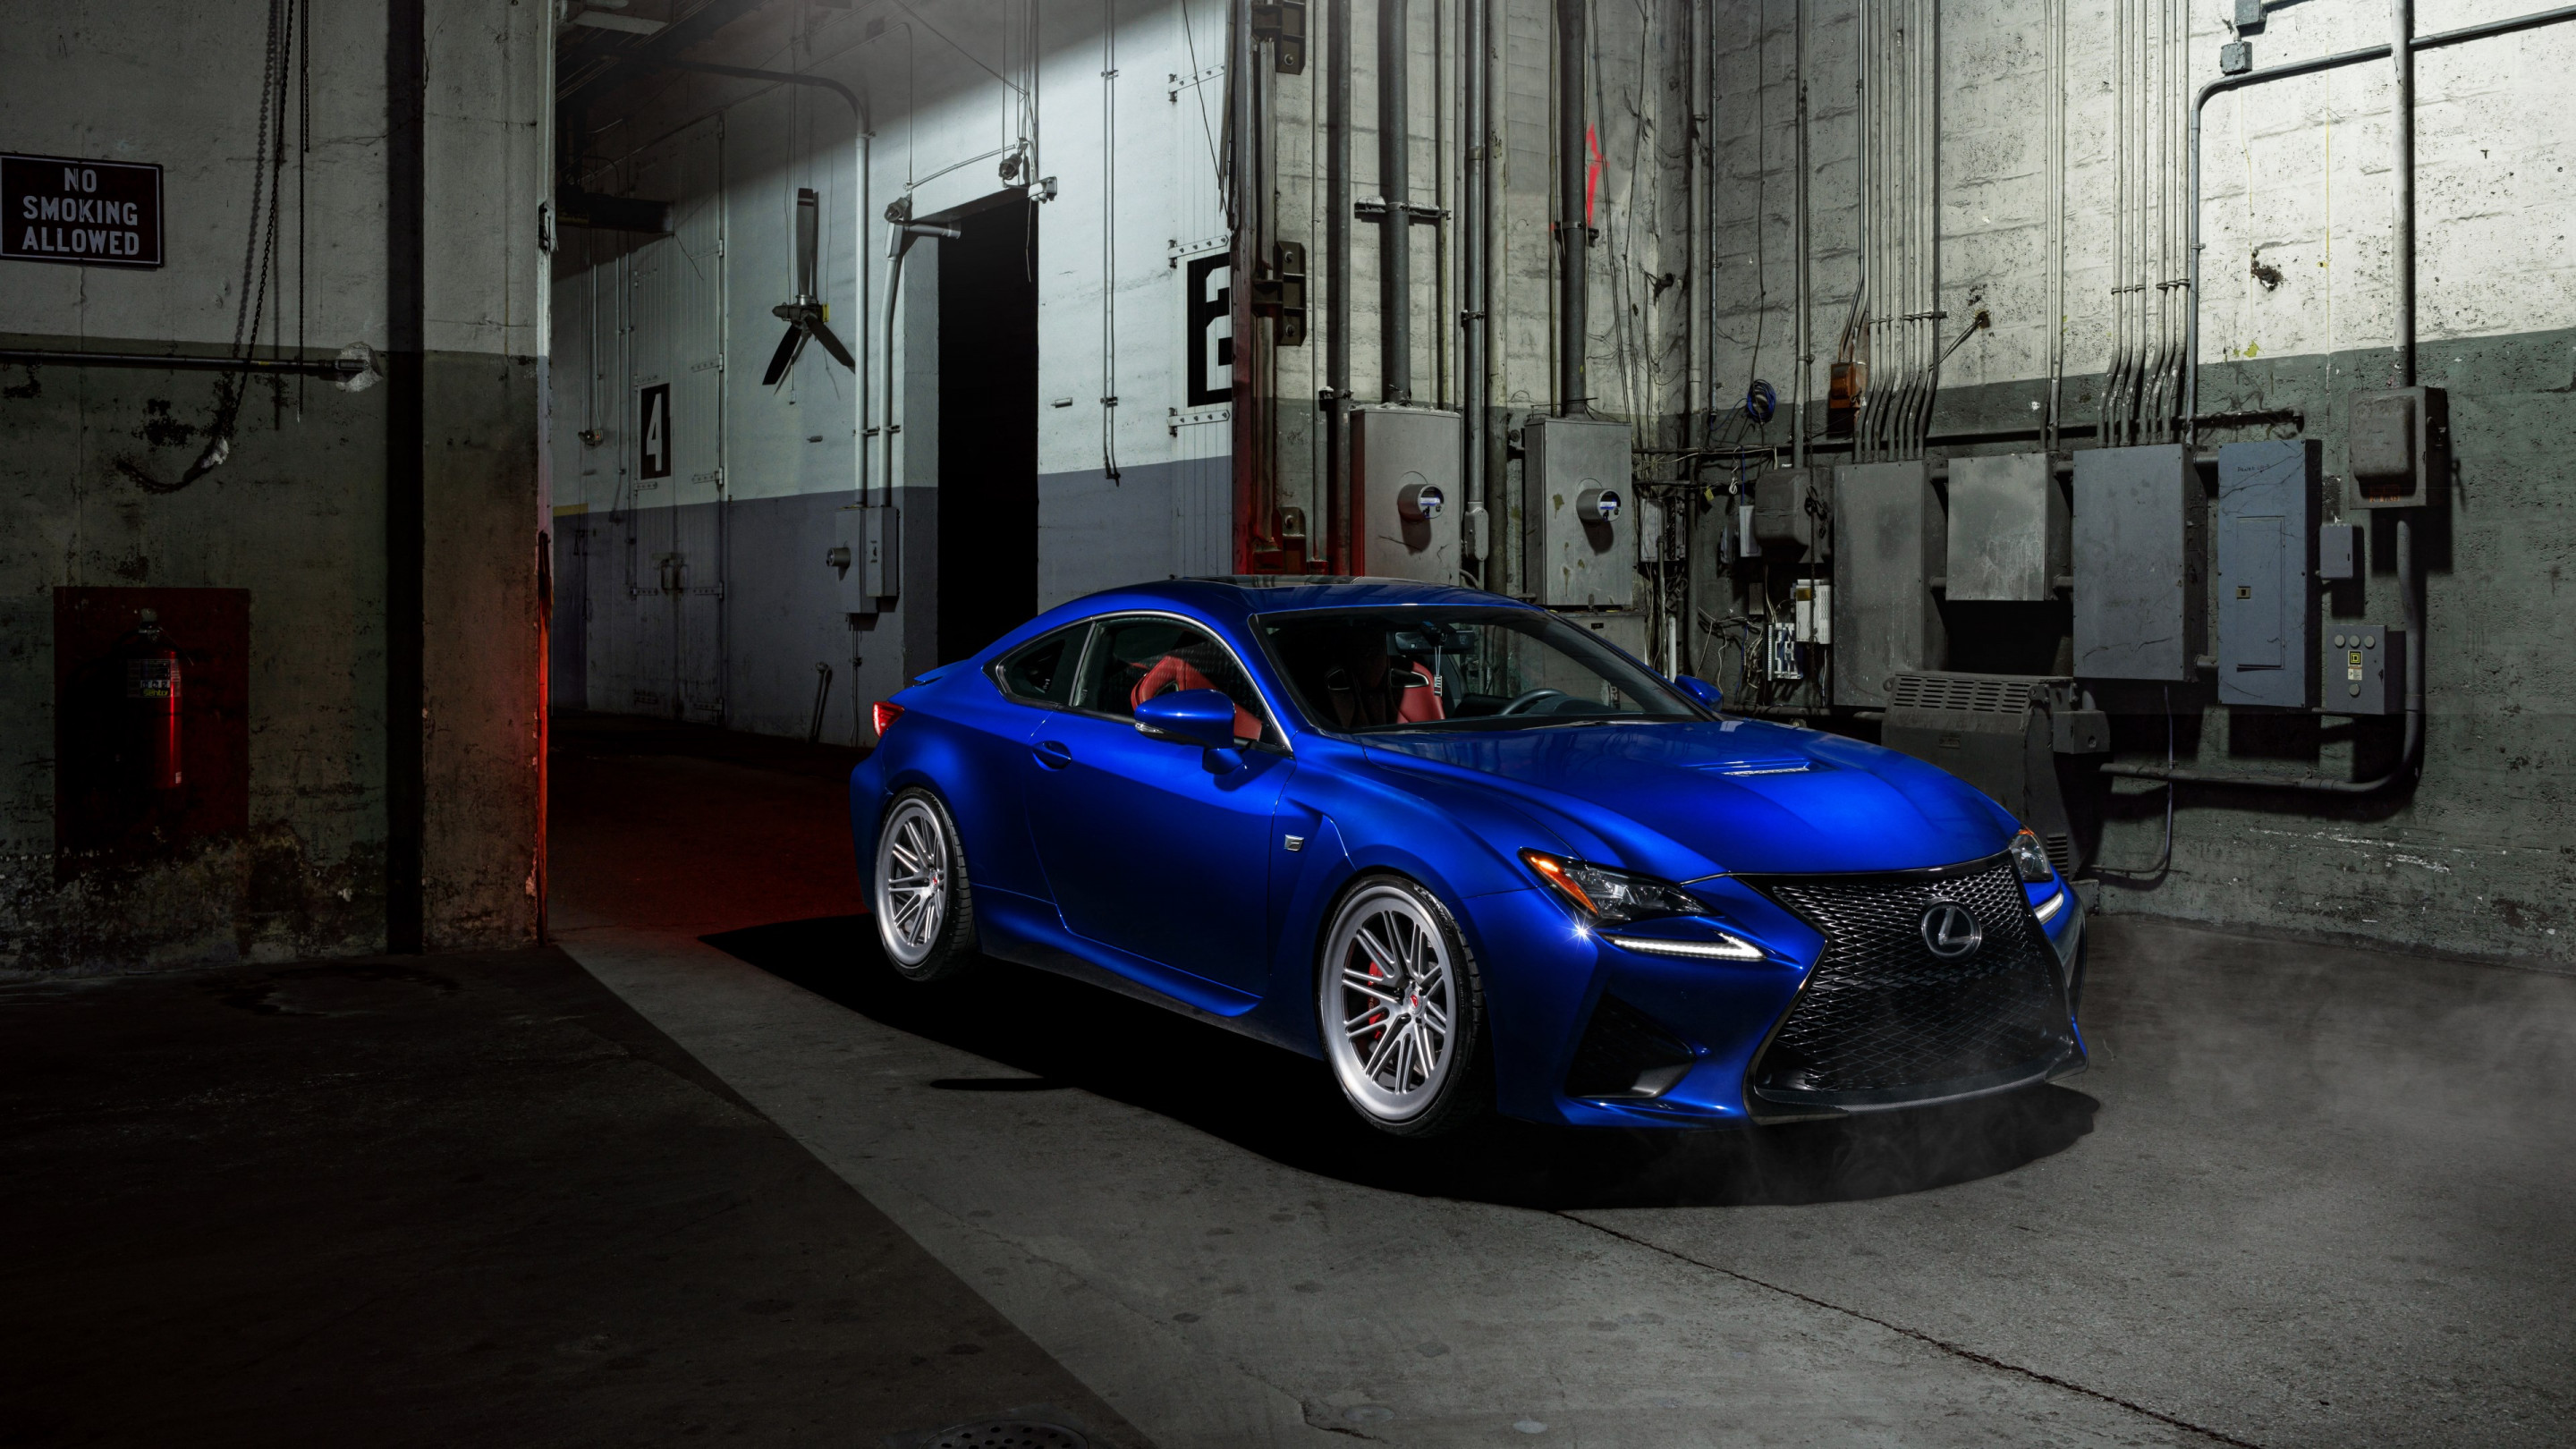 Blue Lexus RC F wallpaper 2880x1620